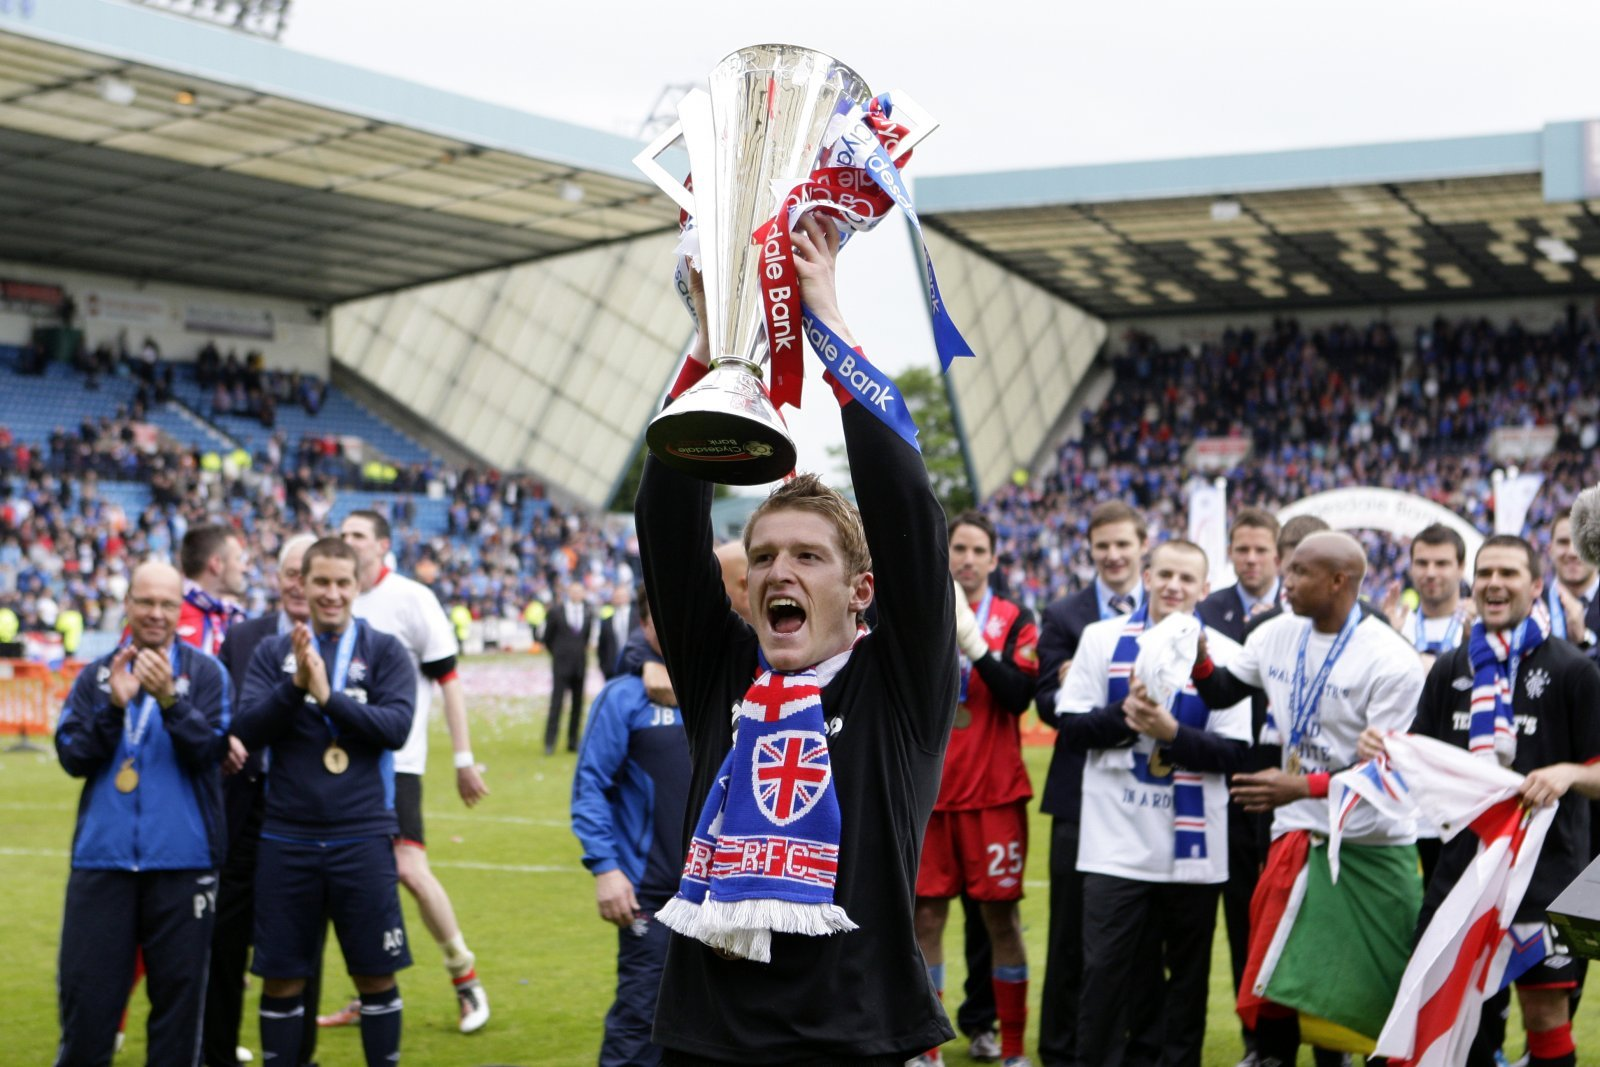 Rangers: Steven Davis can bring experience required to win title